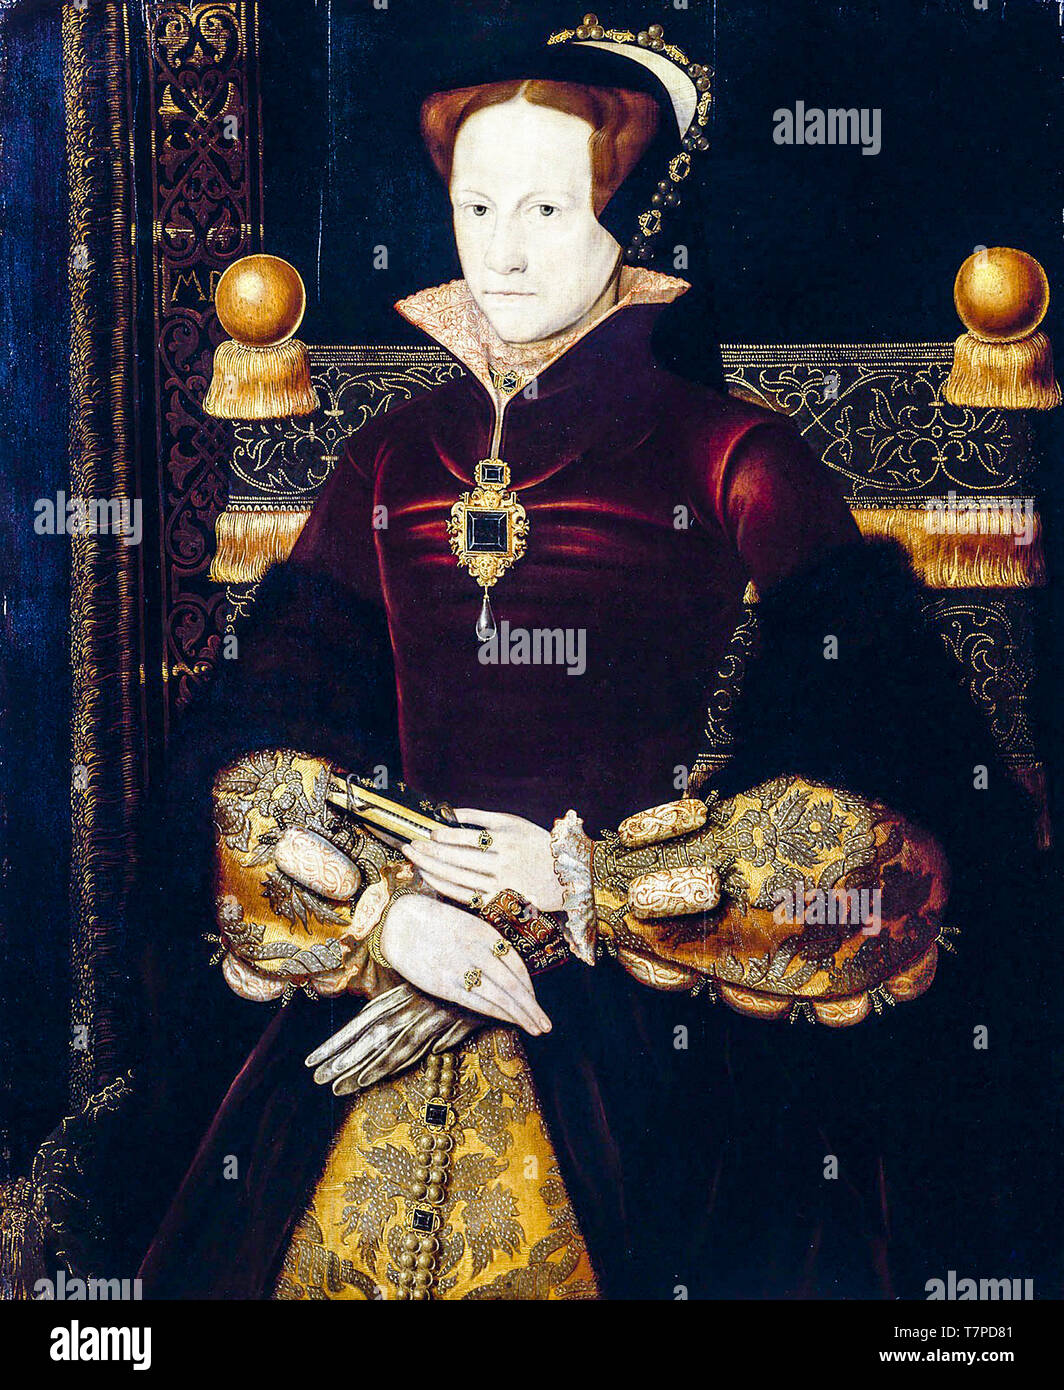 Mary Tudor, Queen of England, portrait painting after Antonis Mor, circa 1554 - Stock Image